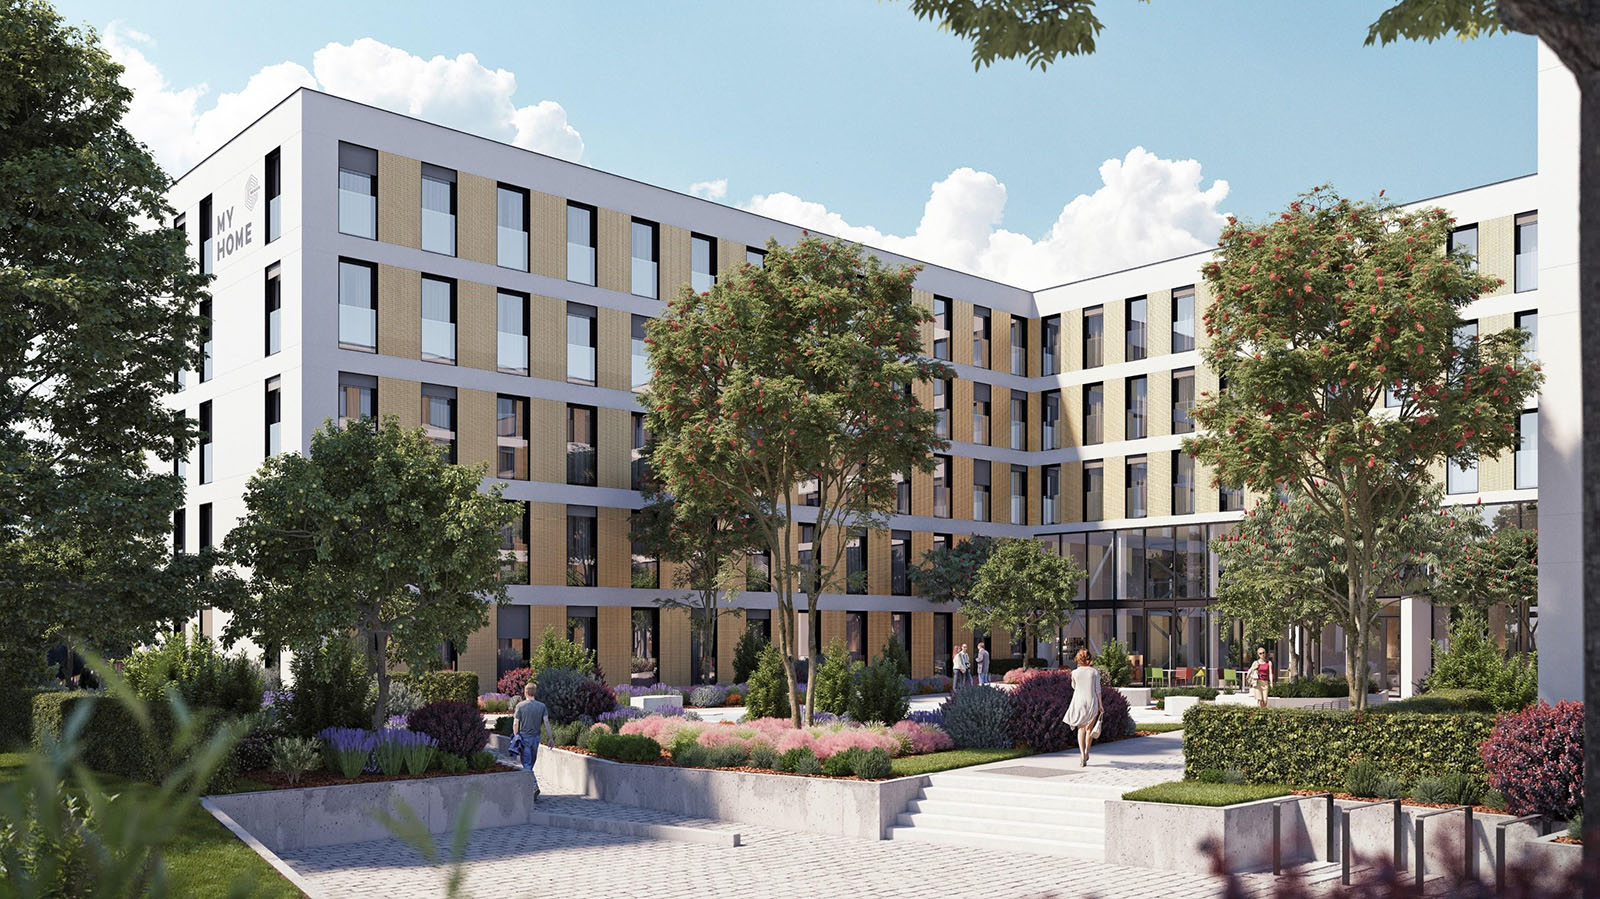 CapitalBAY acquires serviced apartment building in Munich for new micro- living fund